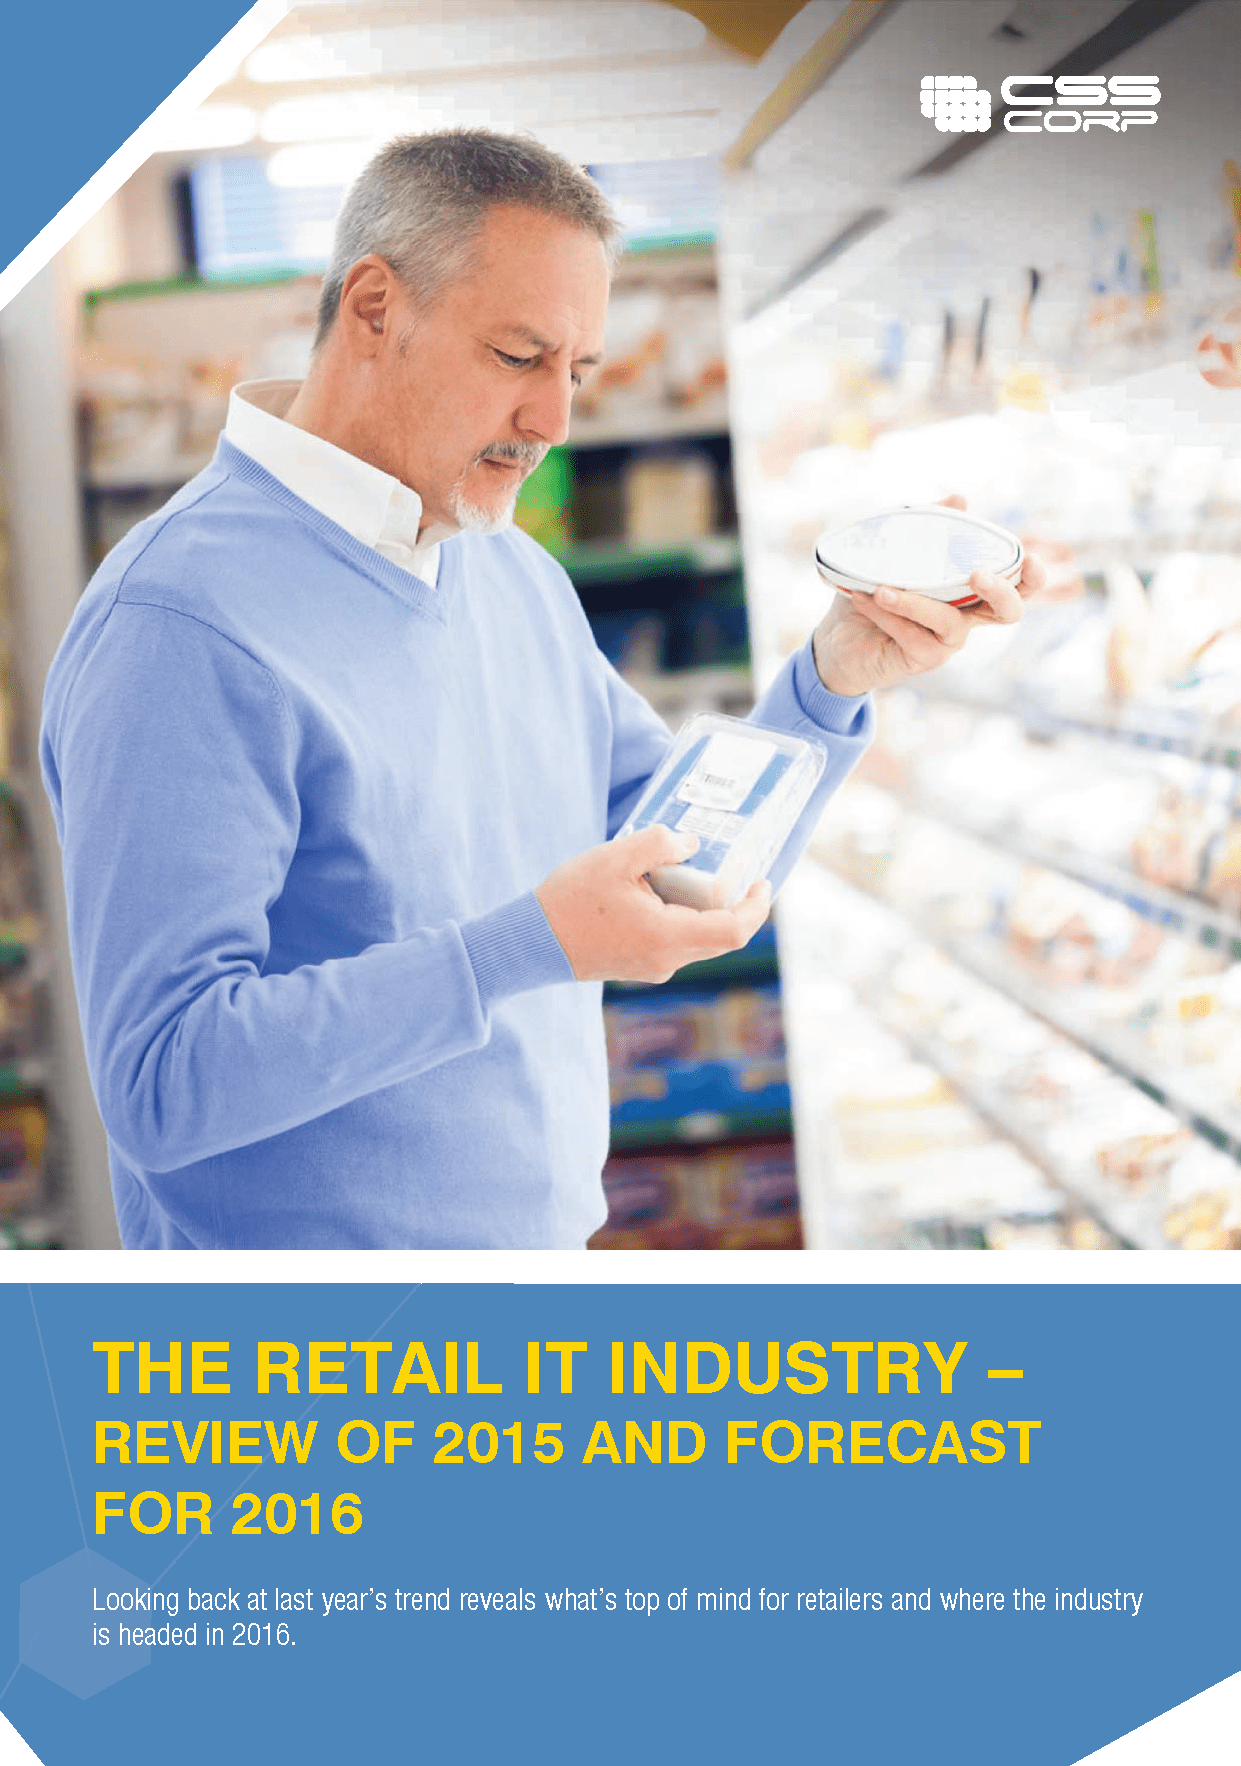 The retail IT industry